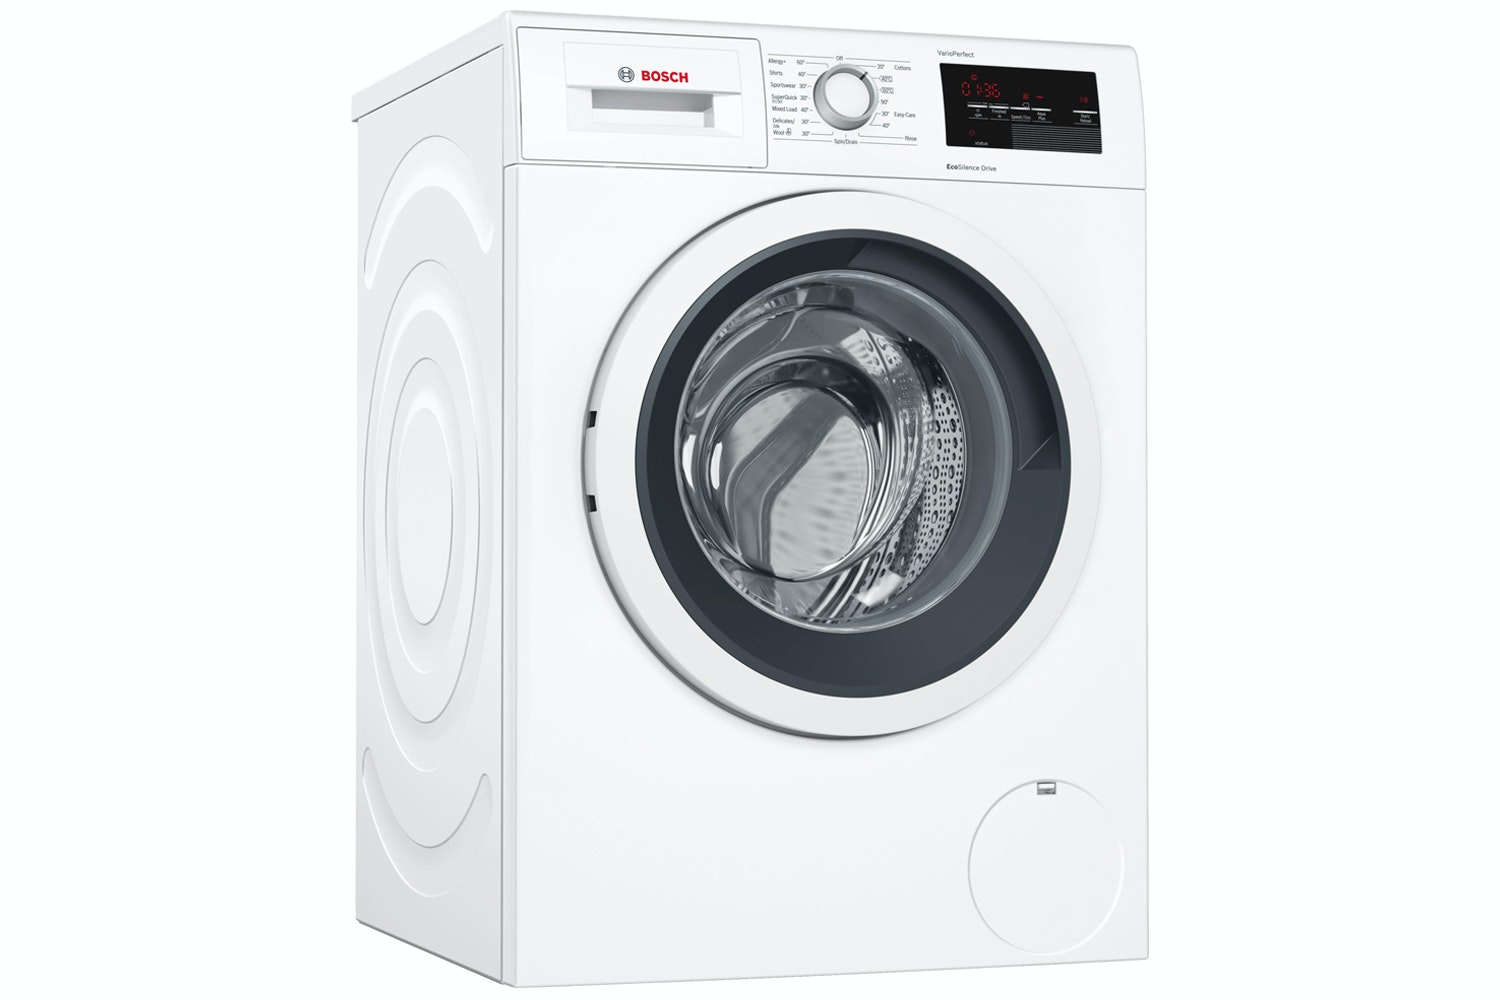 Bosch 9kg Series 6 Freestanding Washing Machine | WAT28371GB